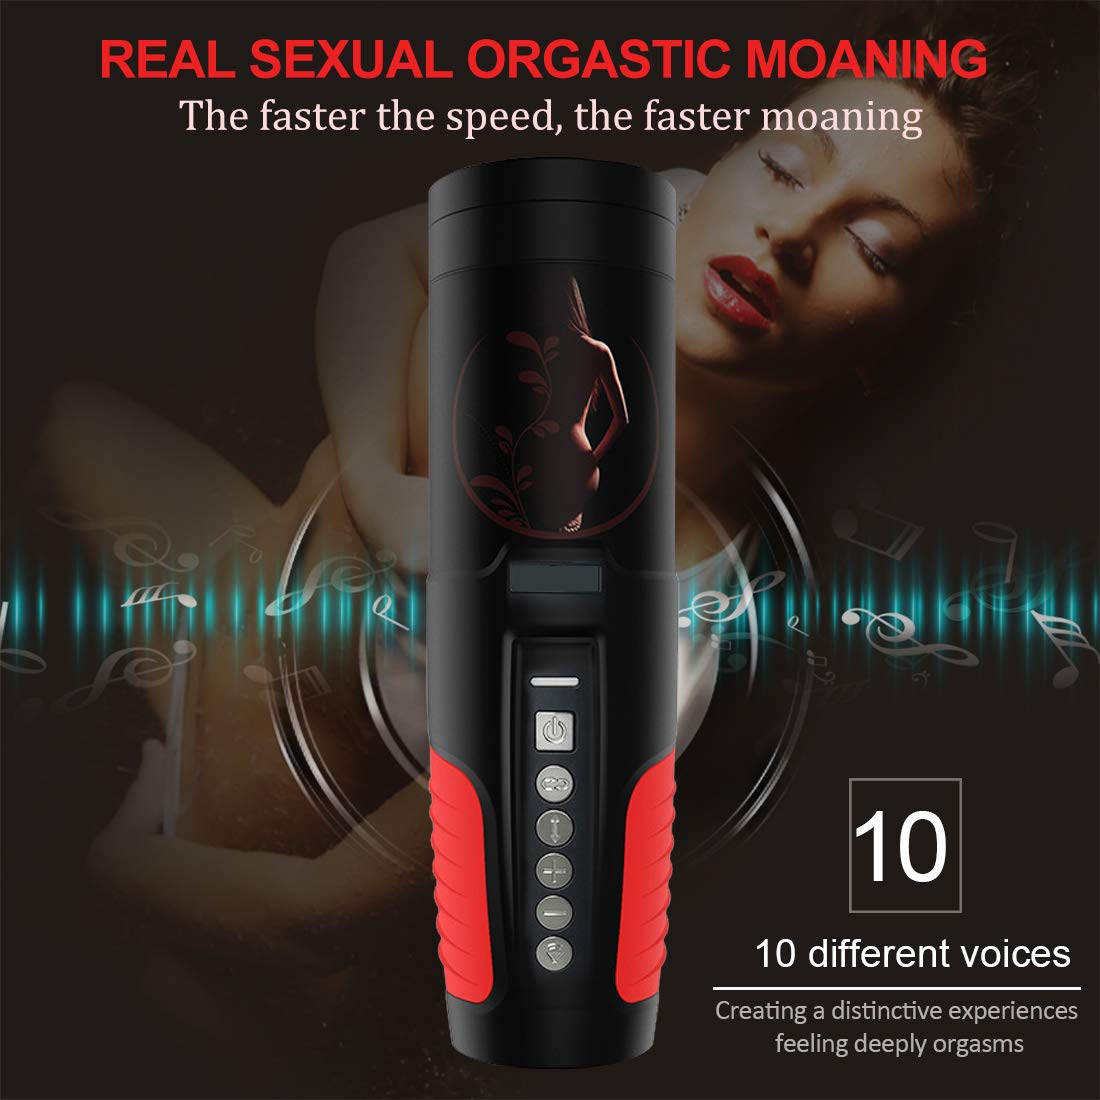 Male Vibrating Prostate Massager FYYLI Toy with 2 Powerful Motors and 10 Stimulation Patterns for Wireless Remote Control Anal Pleasure, Unisex G spot Vibrator Anal Toy T-Shirt by FYYLI (Image #6)